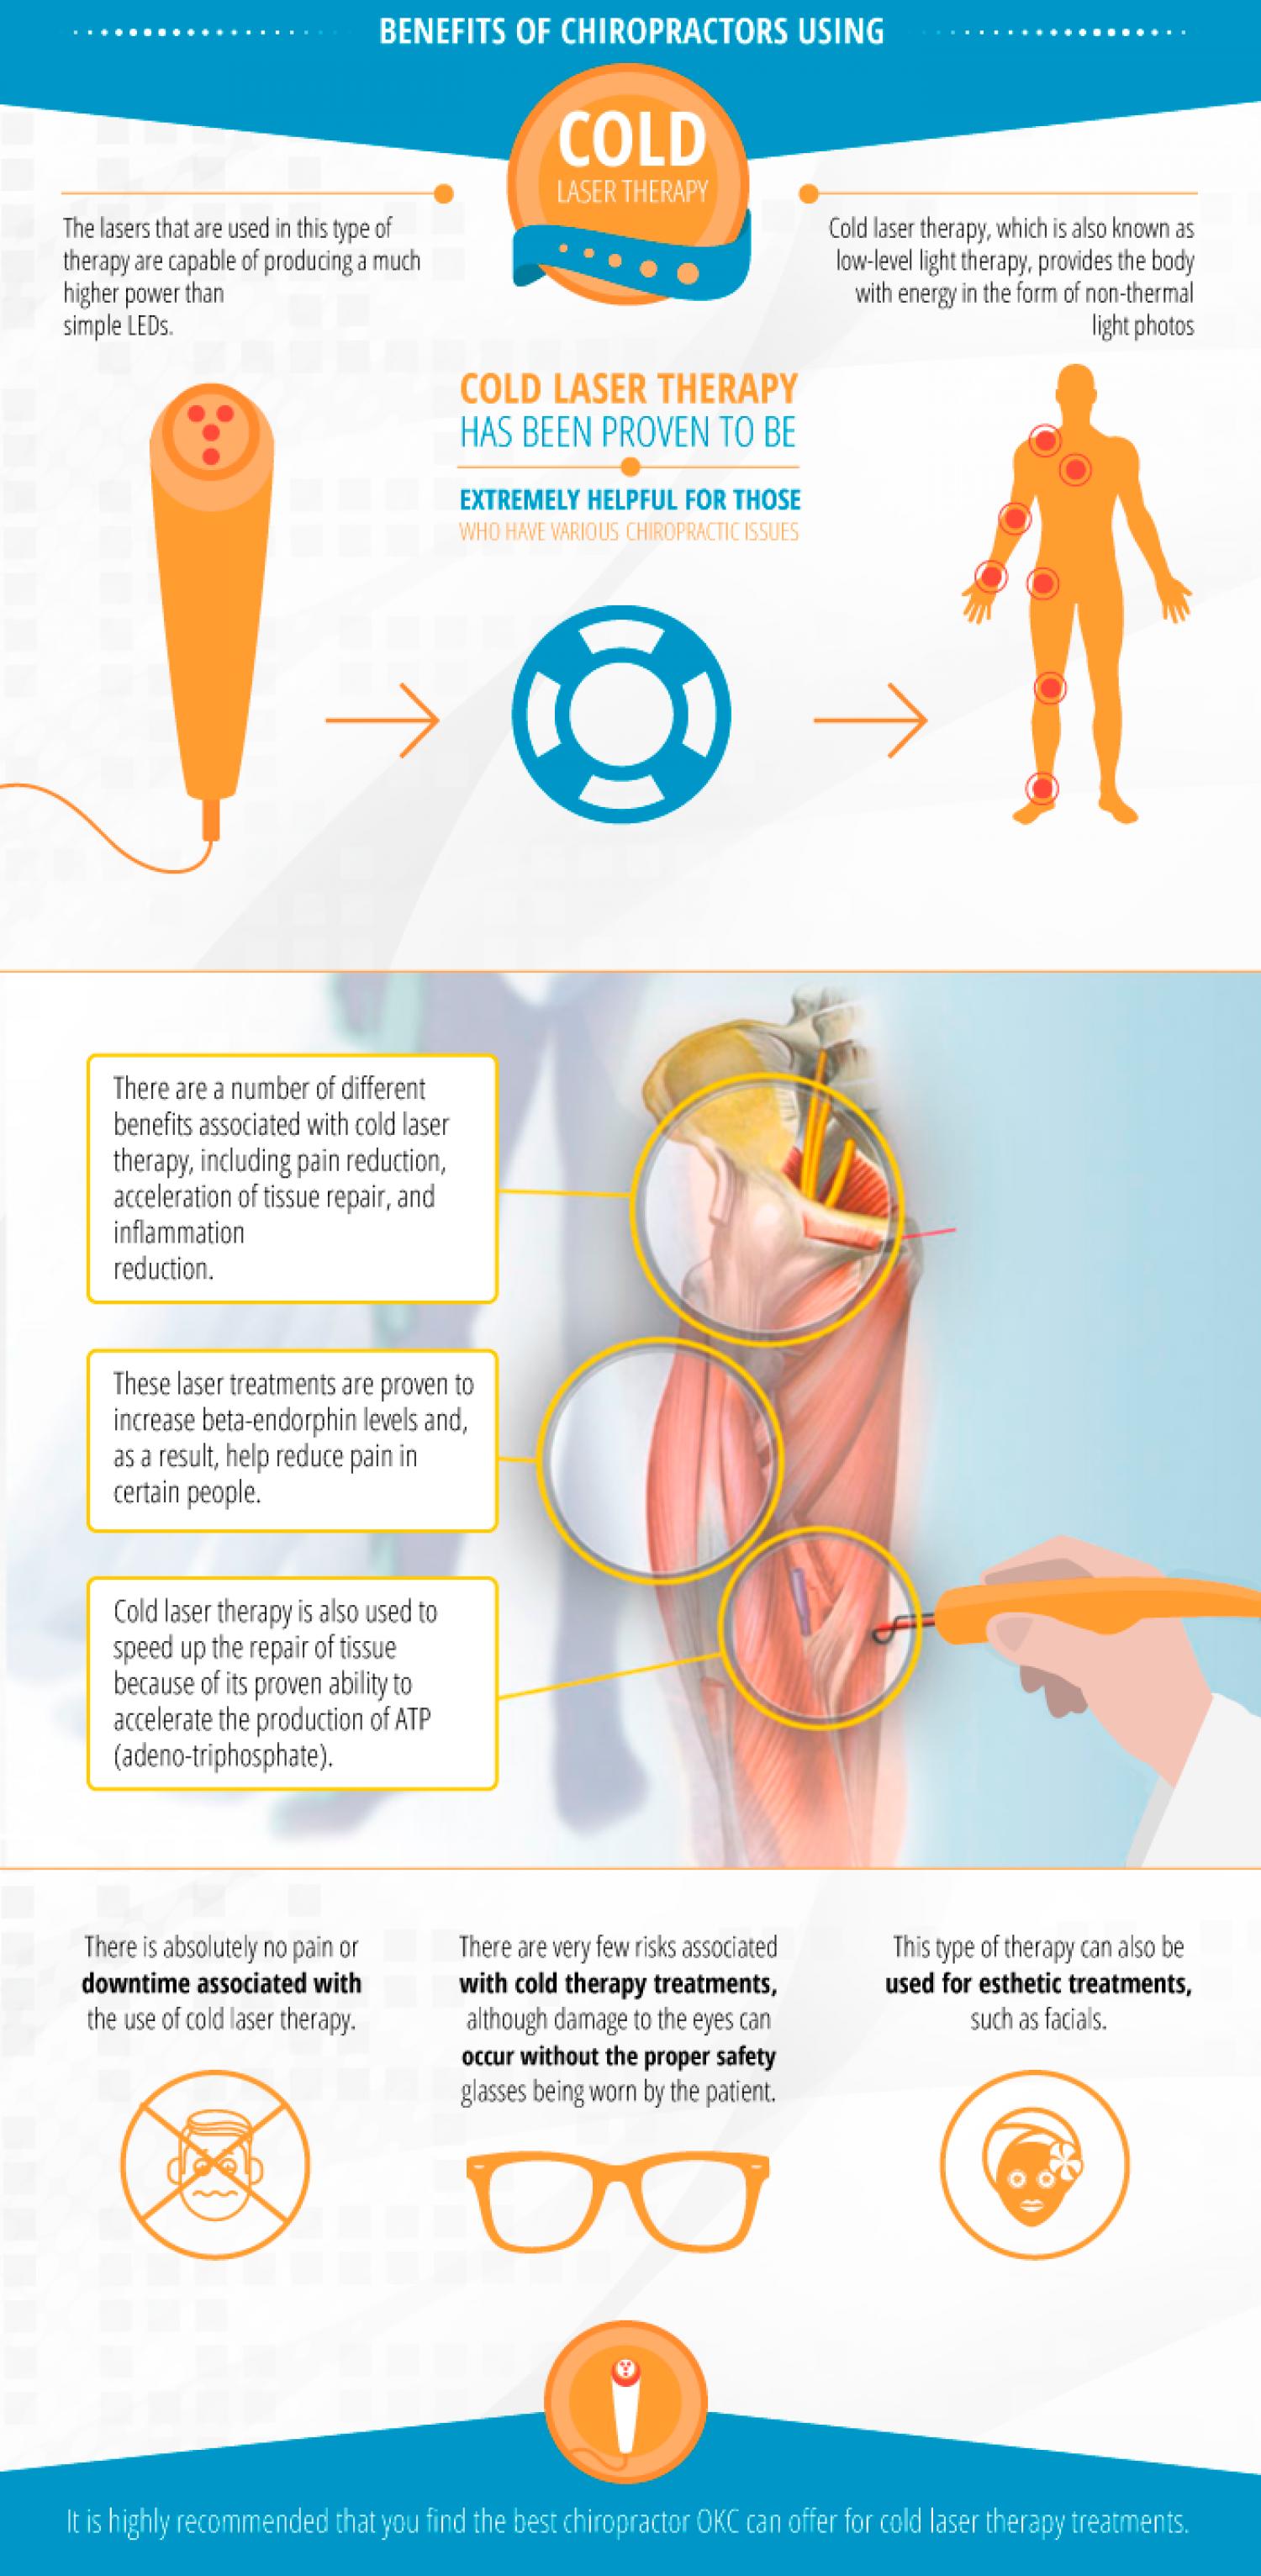 Benefits of Chiropractors Using Cold Laser Therapy Infographic